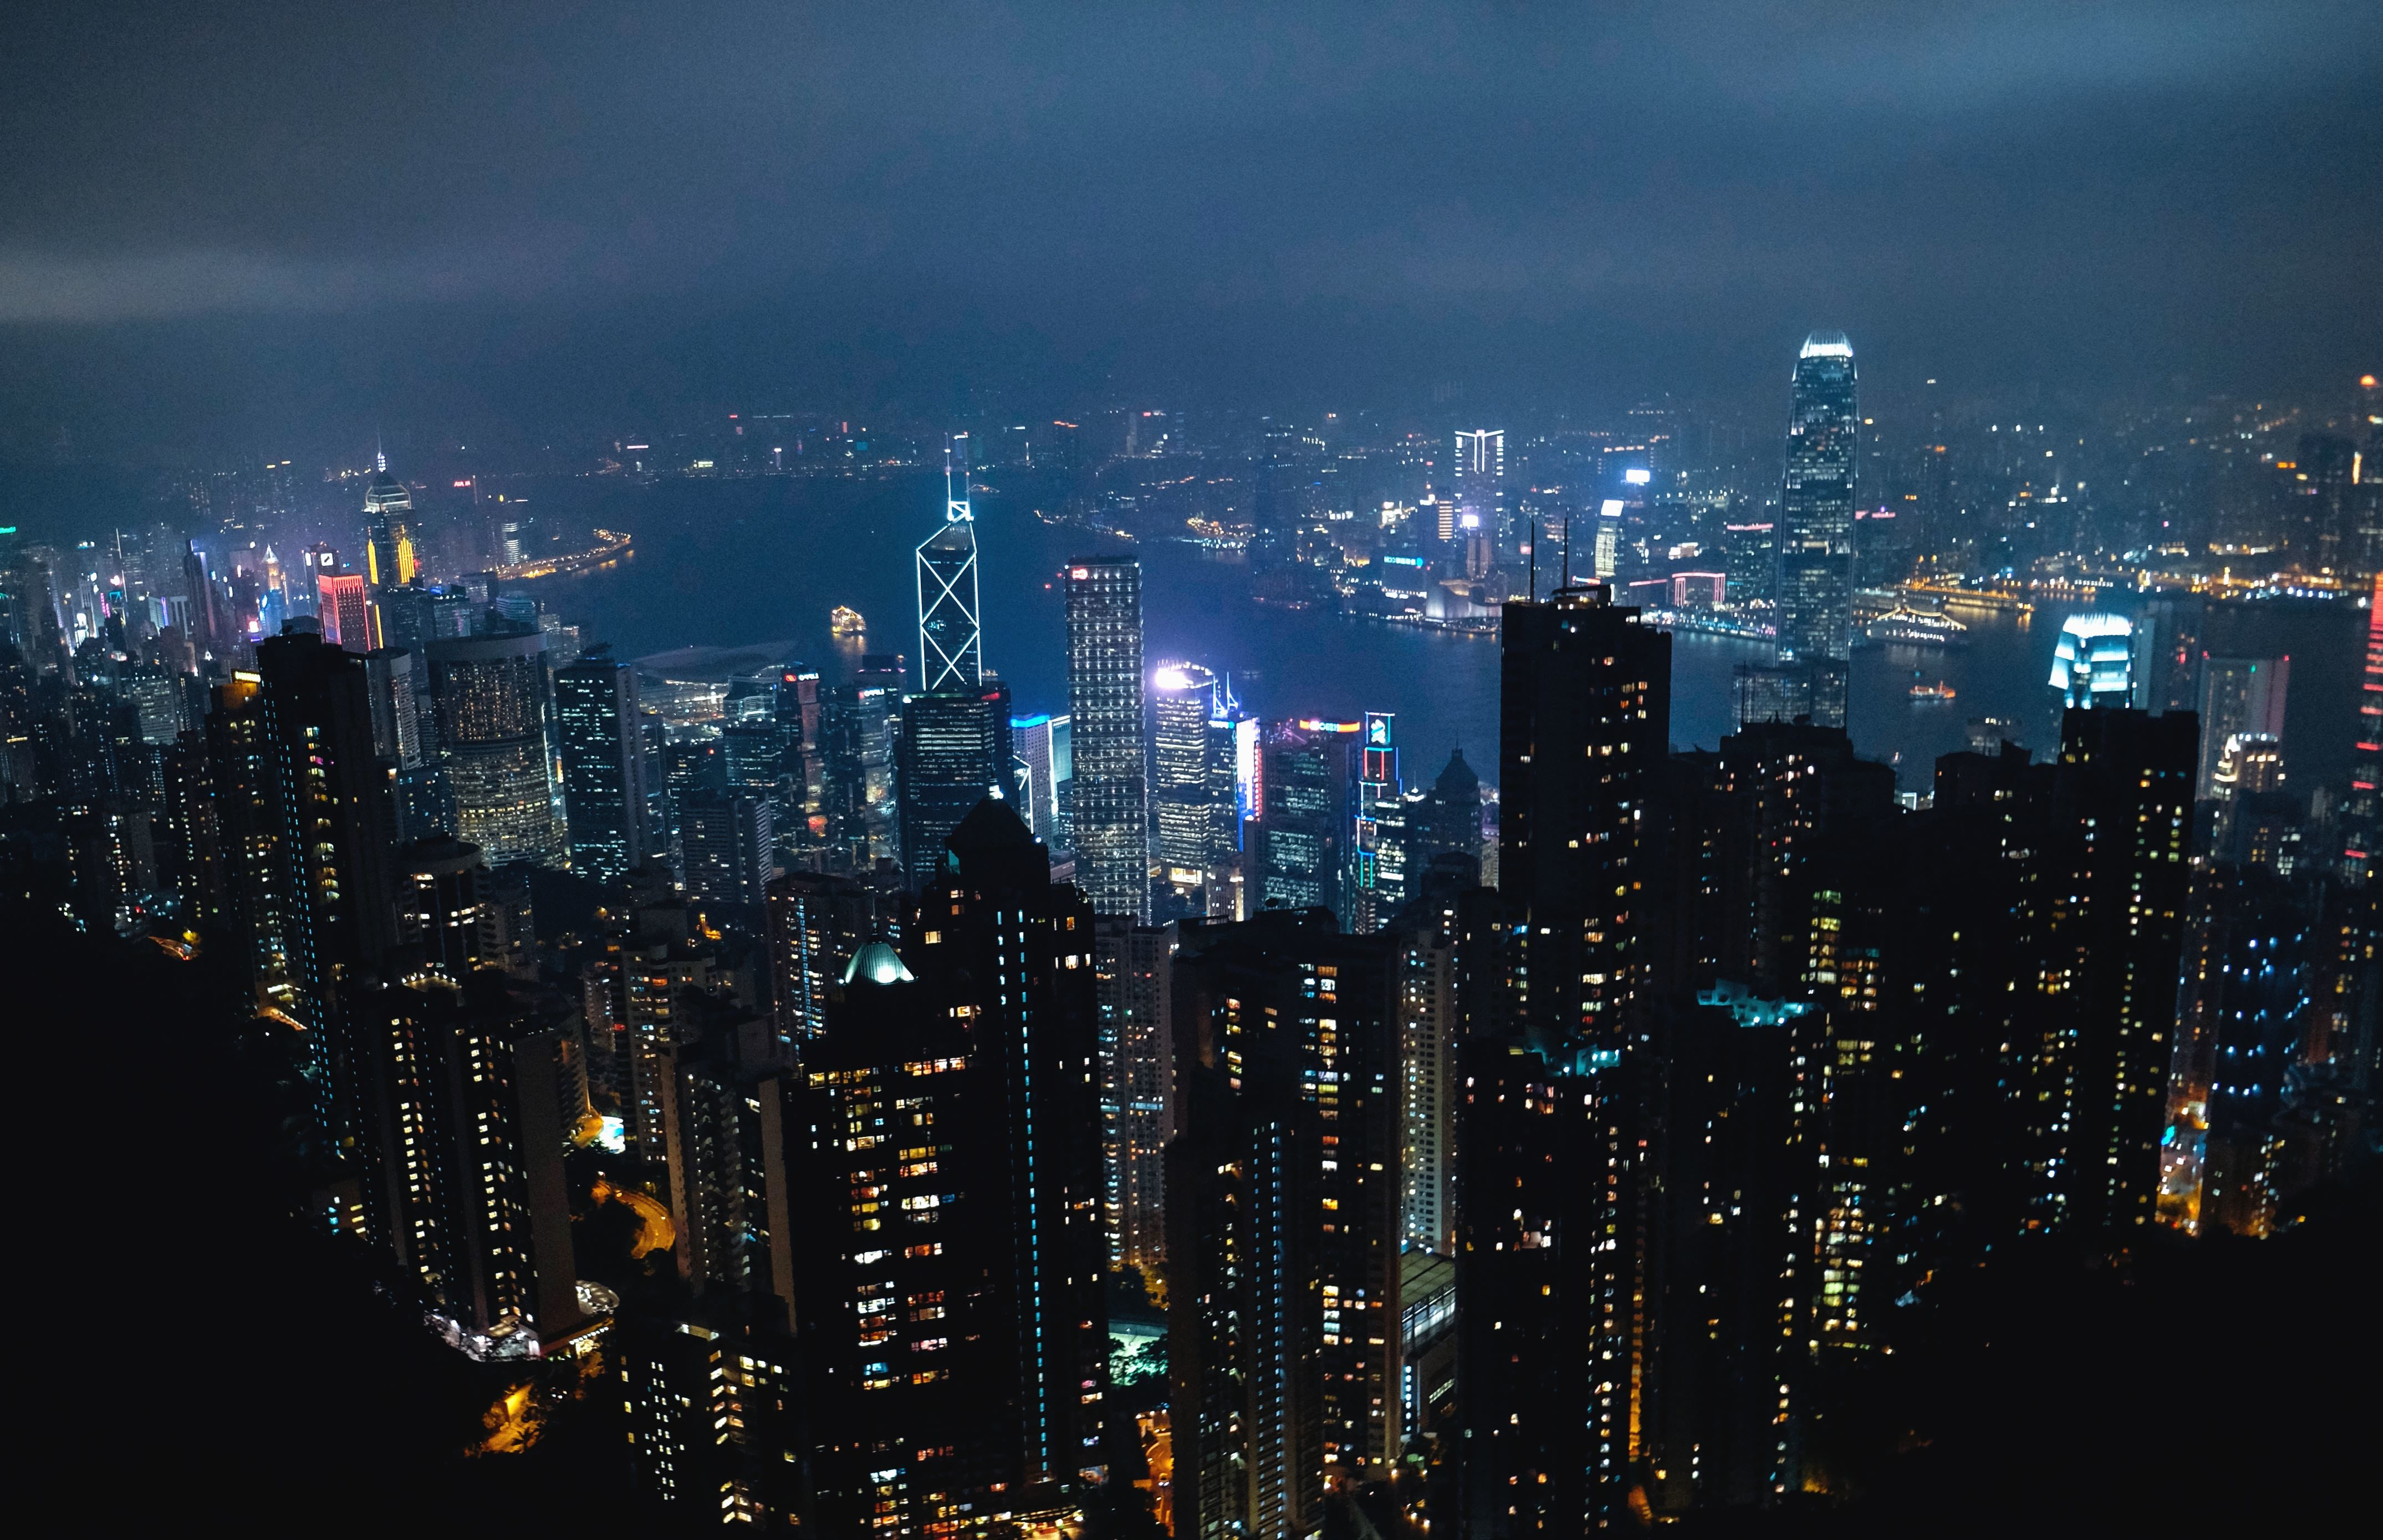 Free picture: city, night, light, building, architecture ...